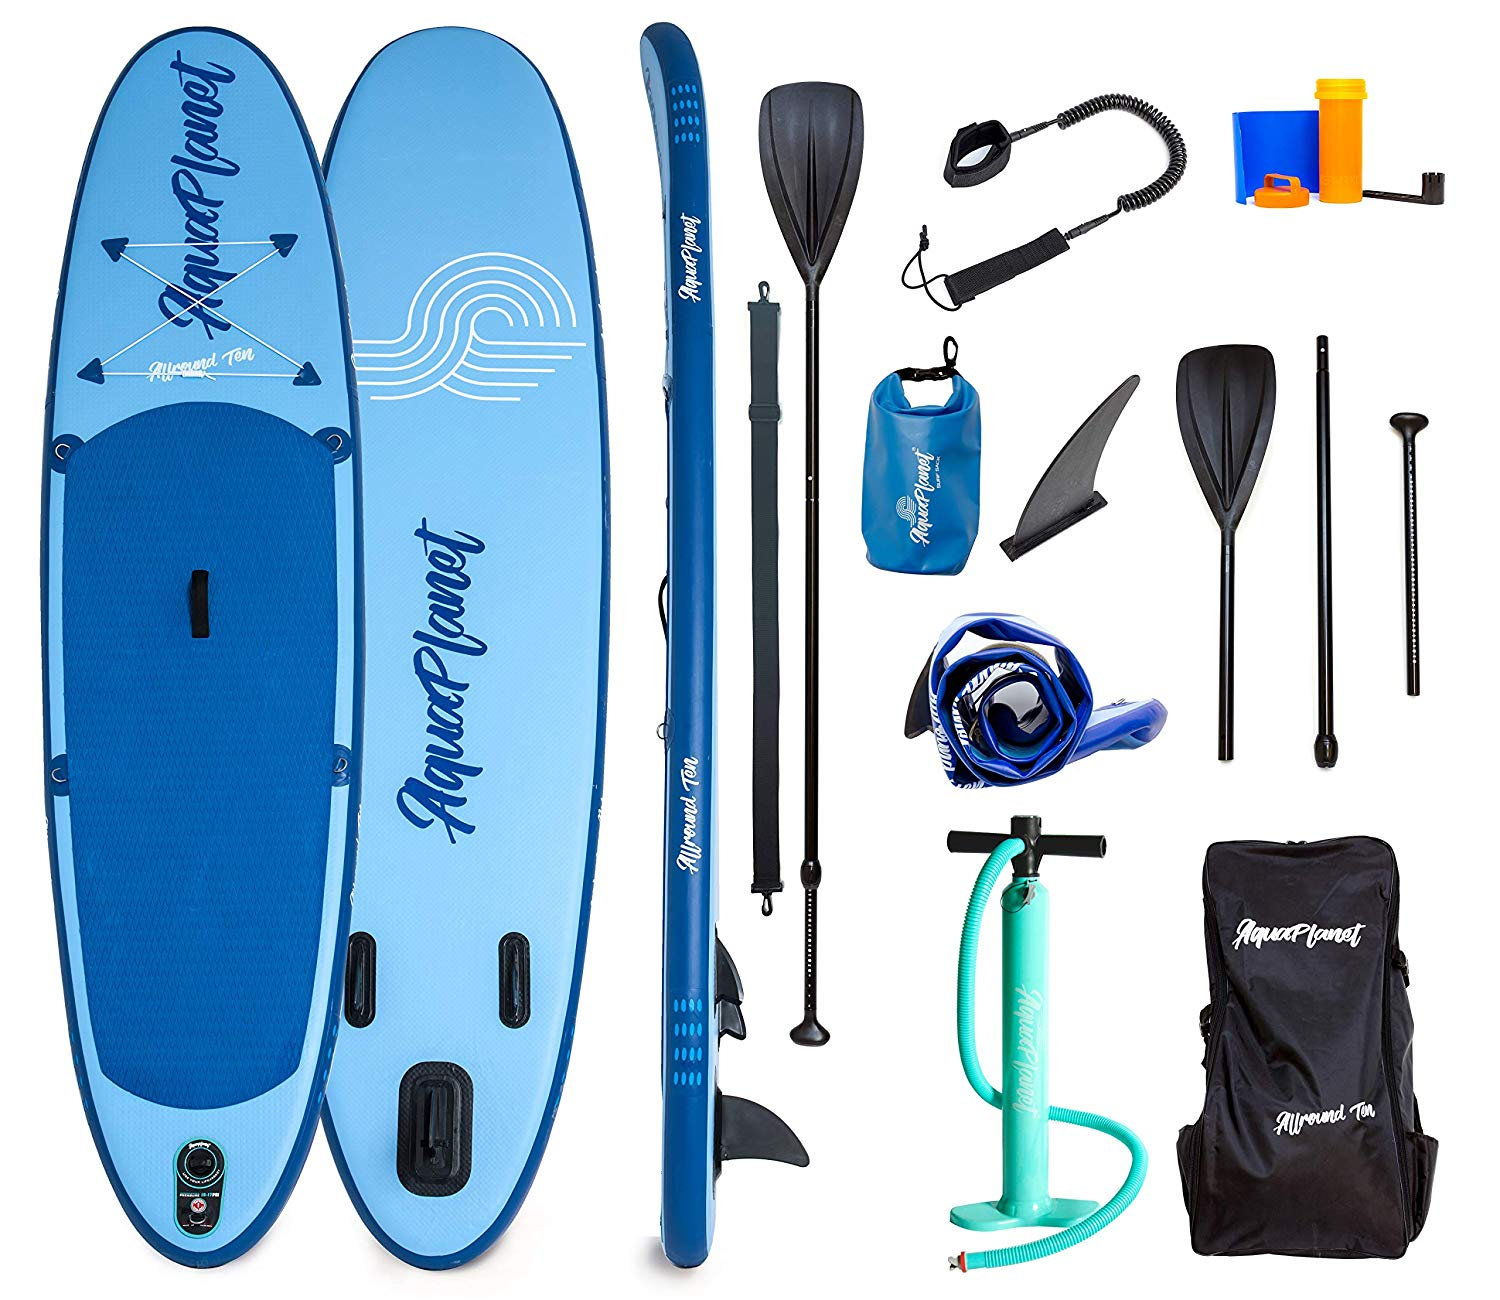 AQUAPLANET 10ft ALLROUND Paddle board – Beginner's Kit